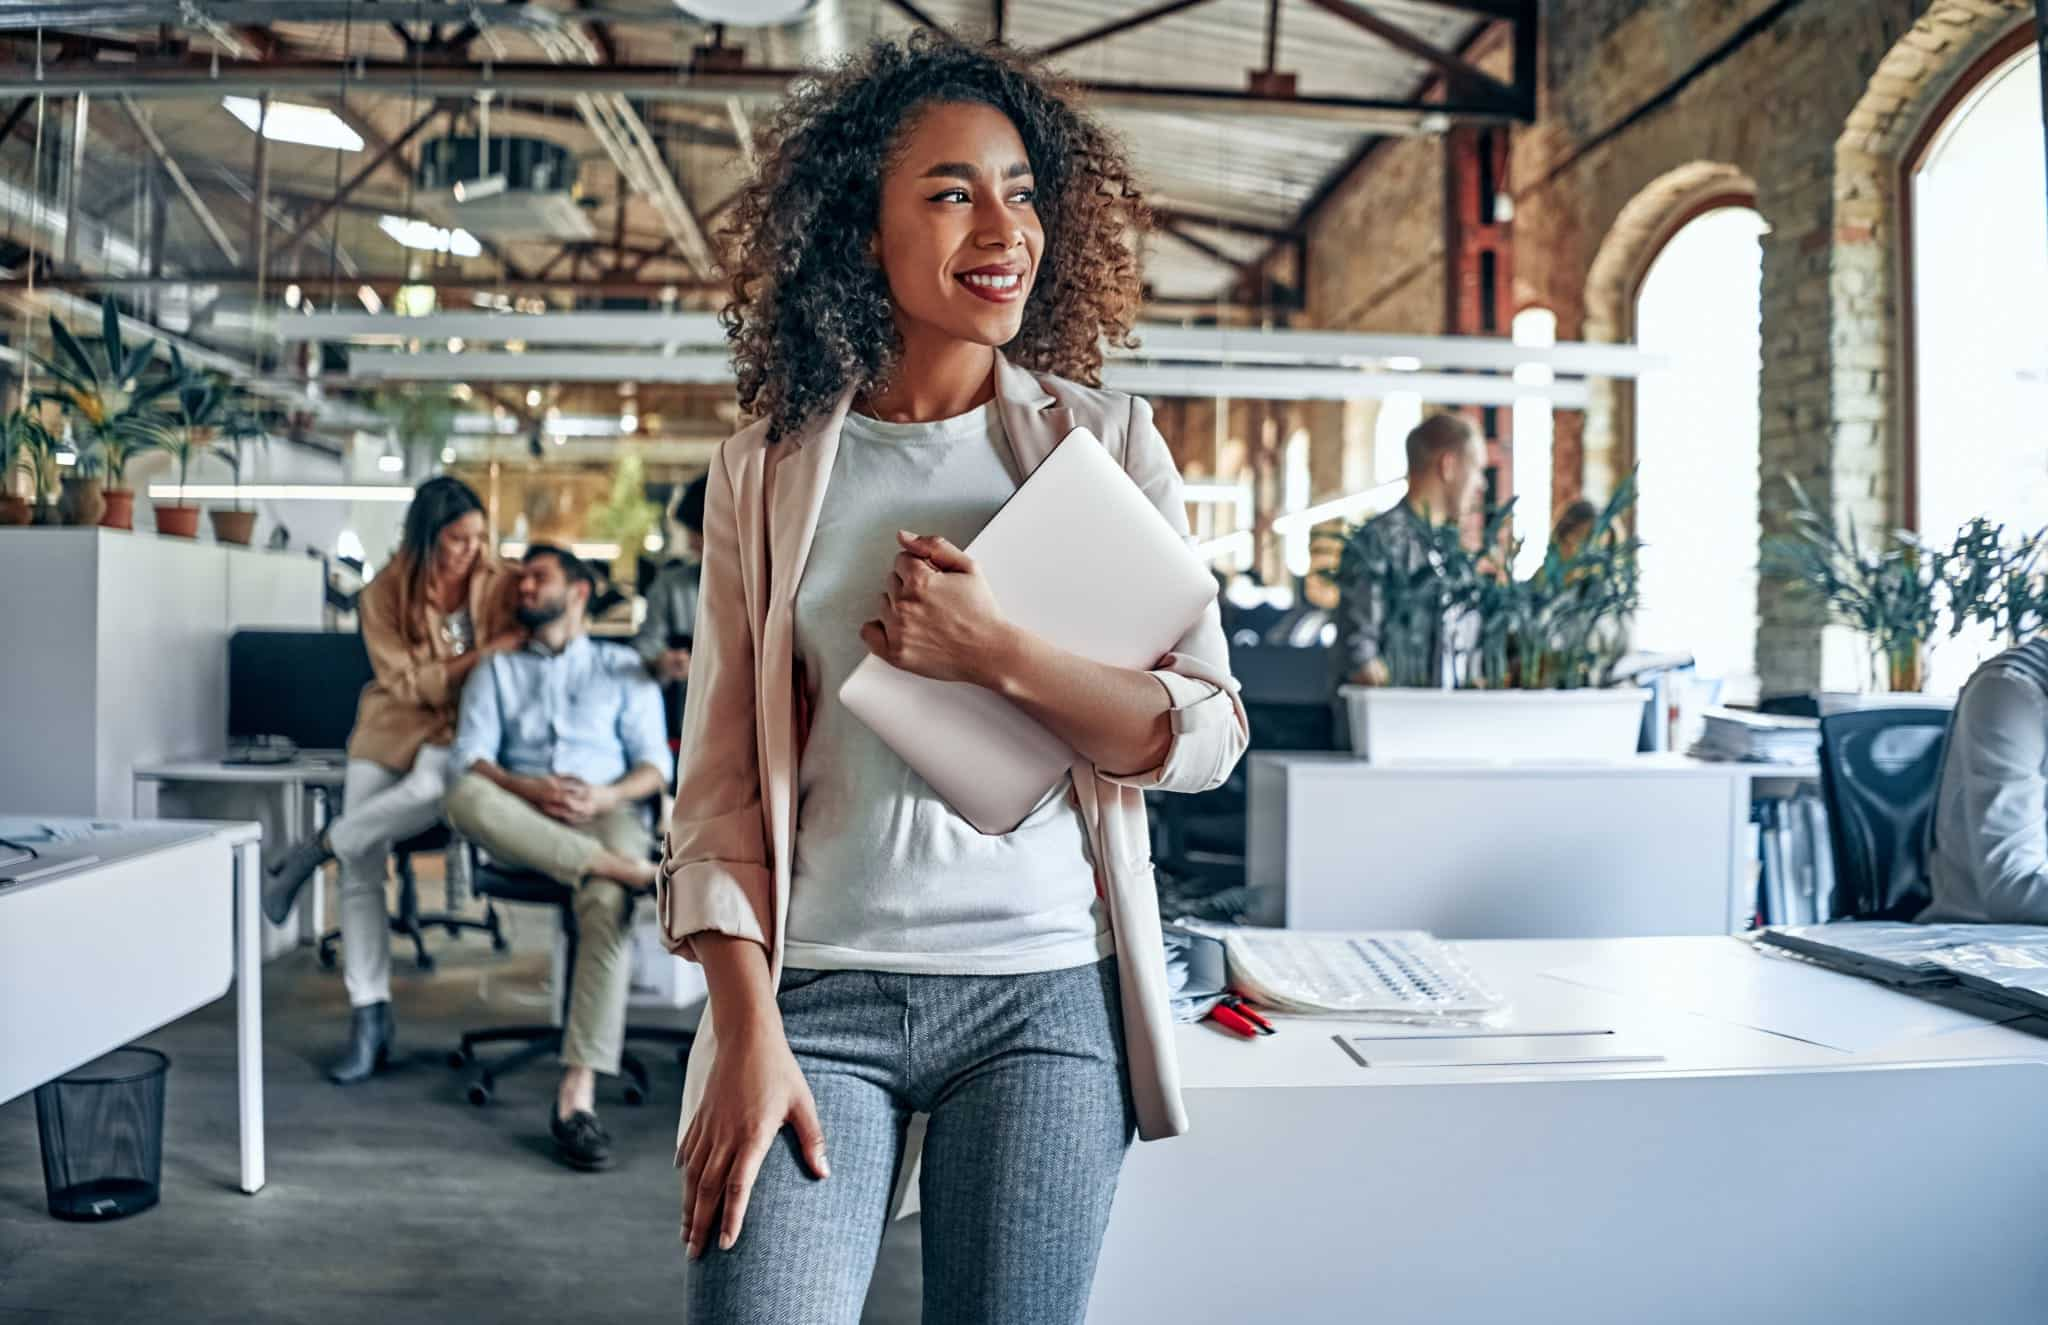 A woman walks through her office carrying a laptop while smiling.